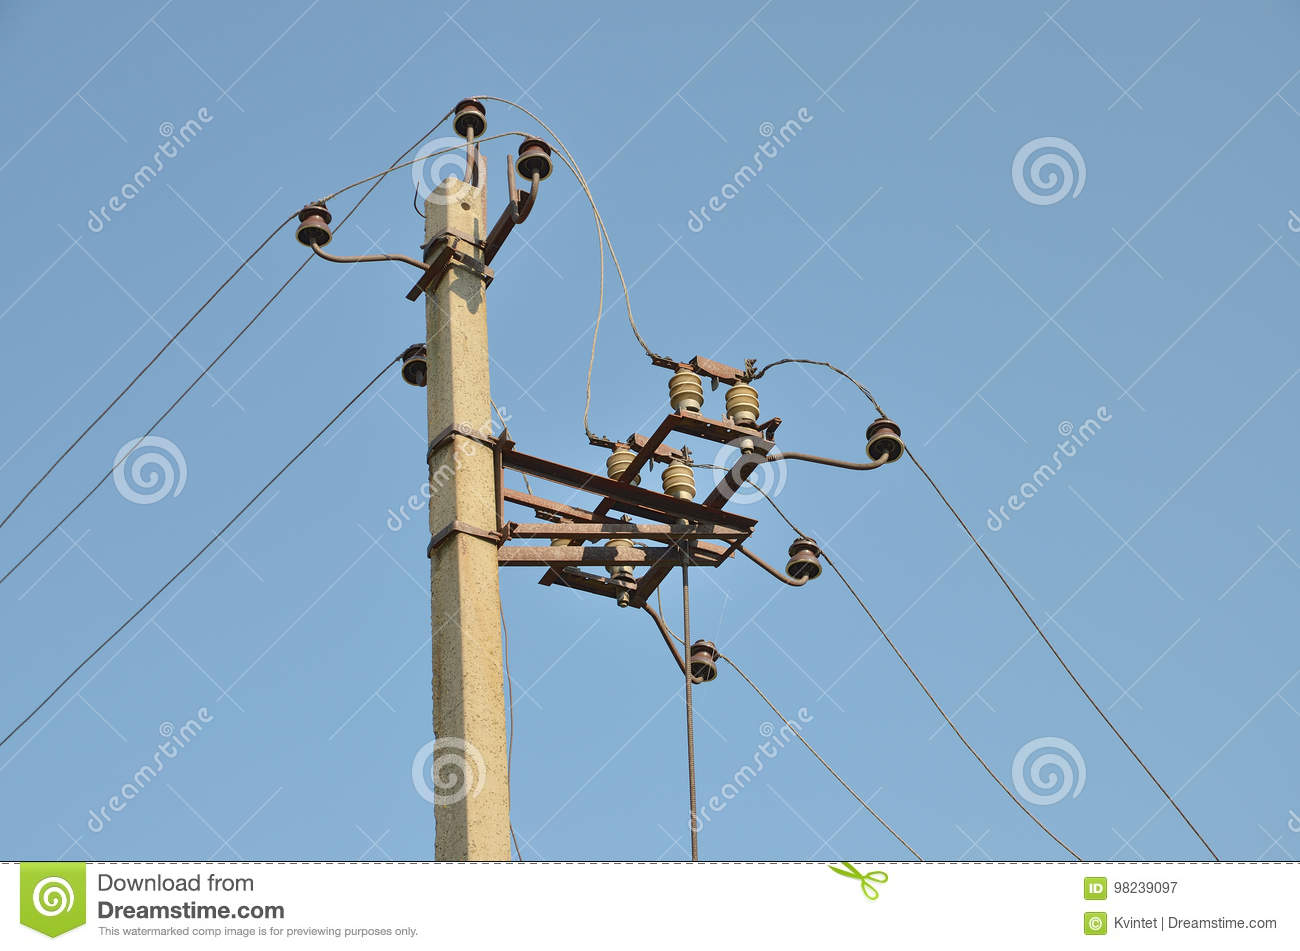 Power Electrical Disconnect At Pillar Stock Image - Image of current ...